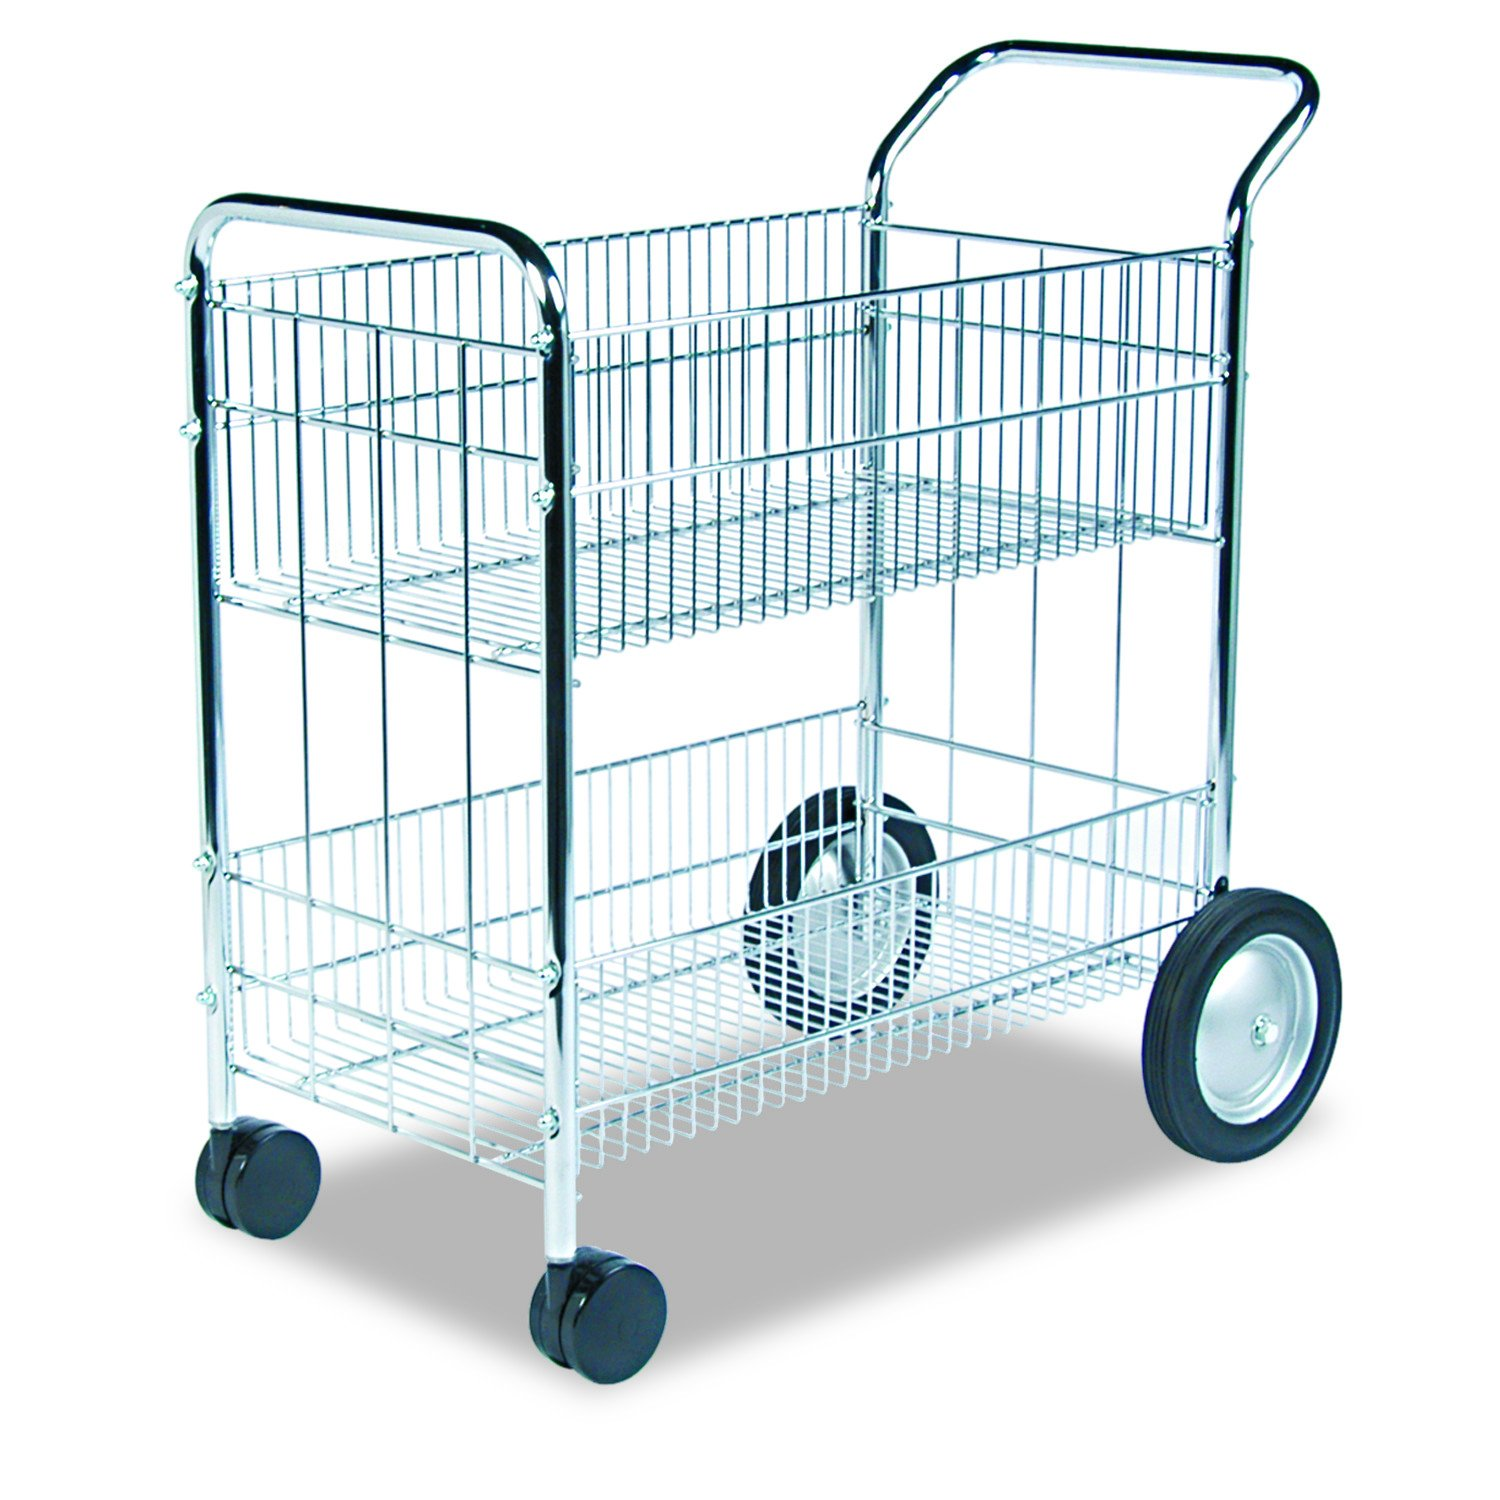 Fellowes 40912 Wire Mail Cart, 21-1/2w x 37-1/2d x 39-1/4h, Chrome by Fellowes